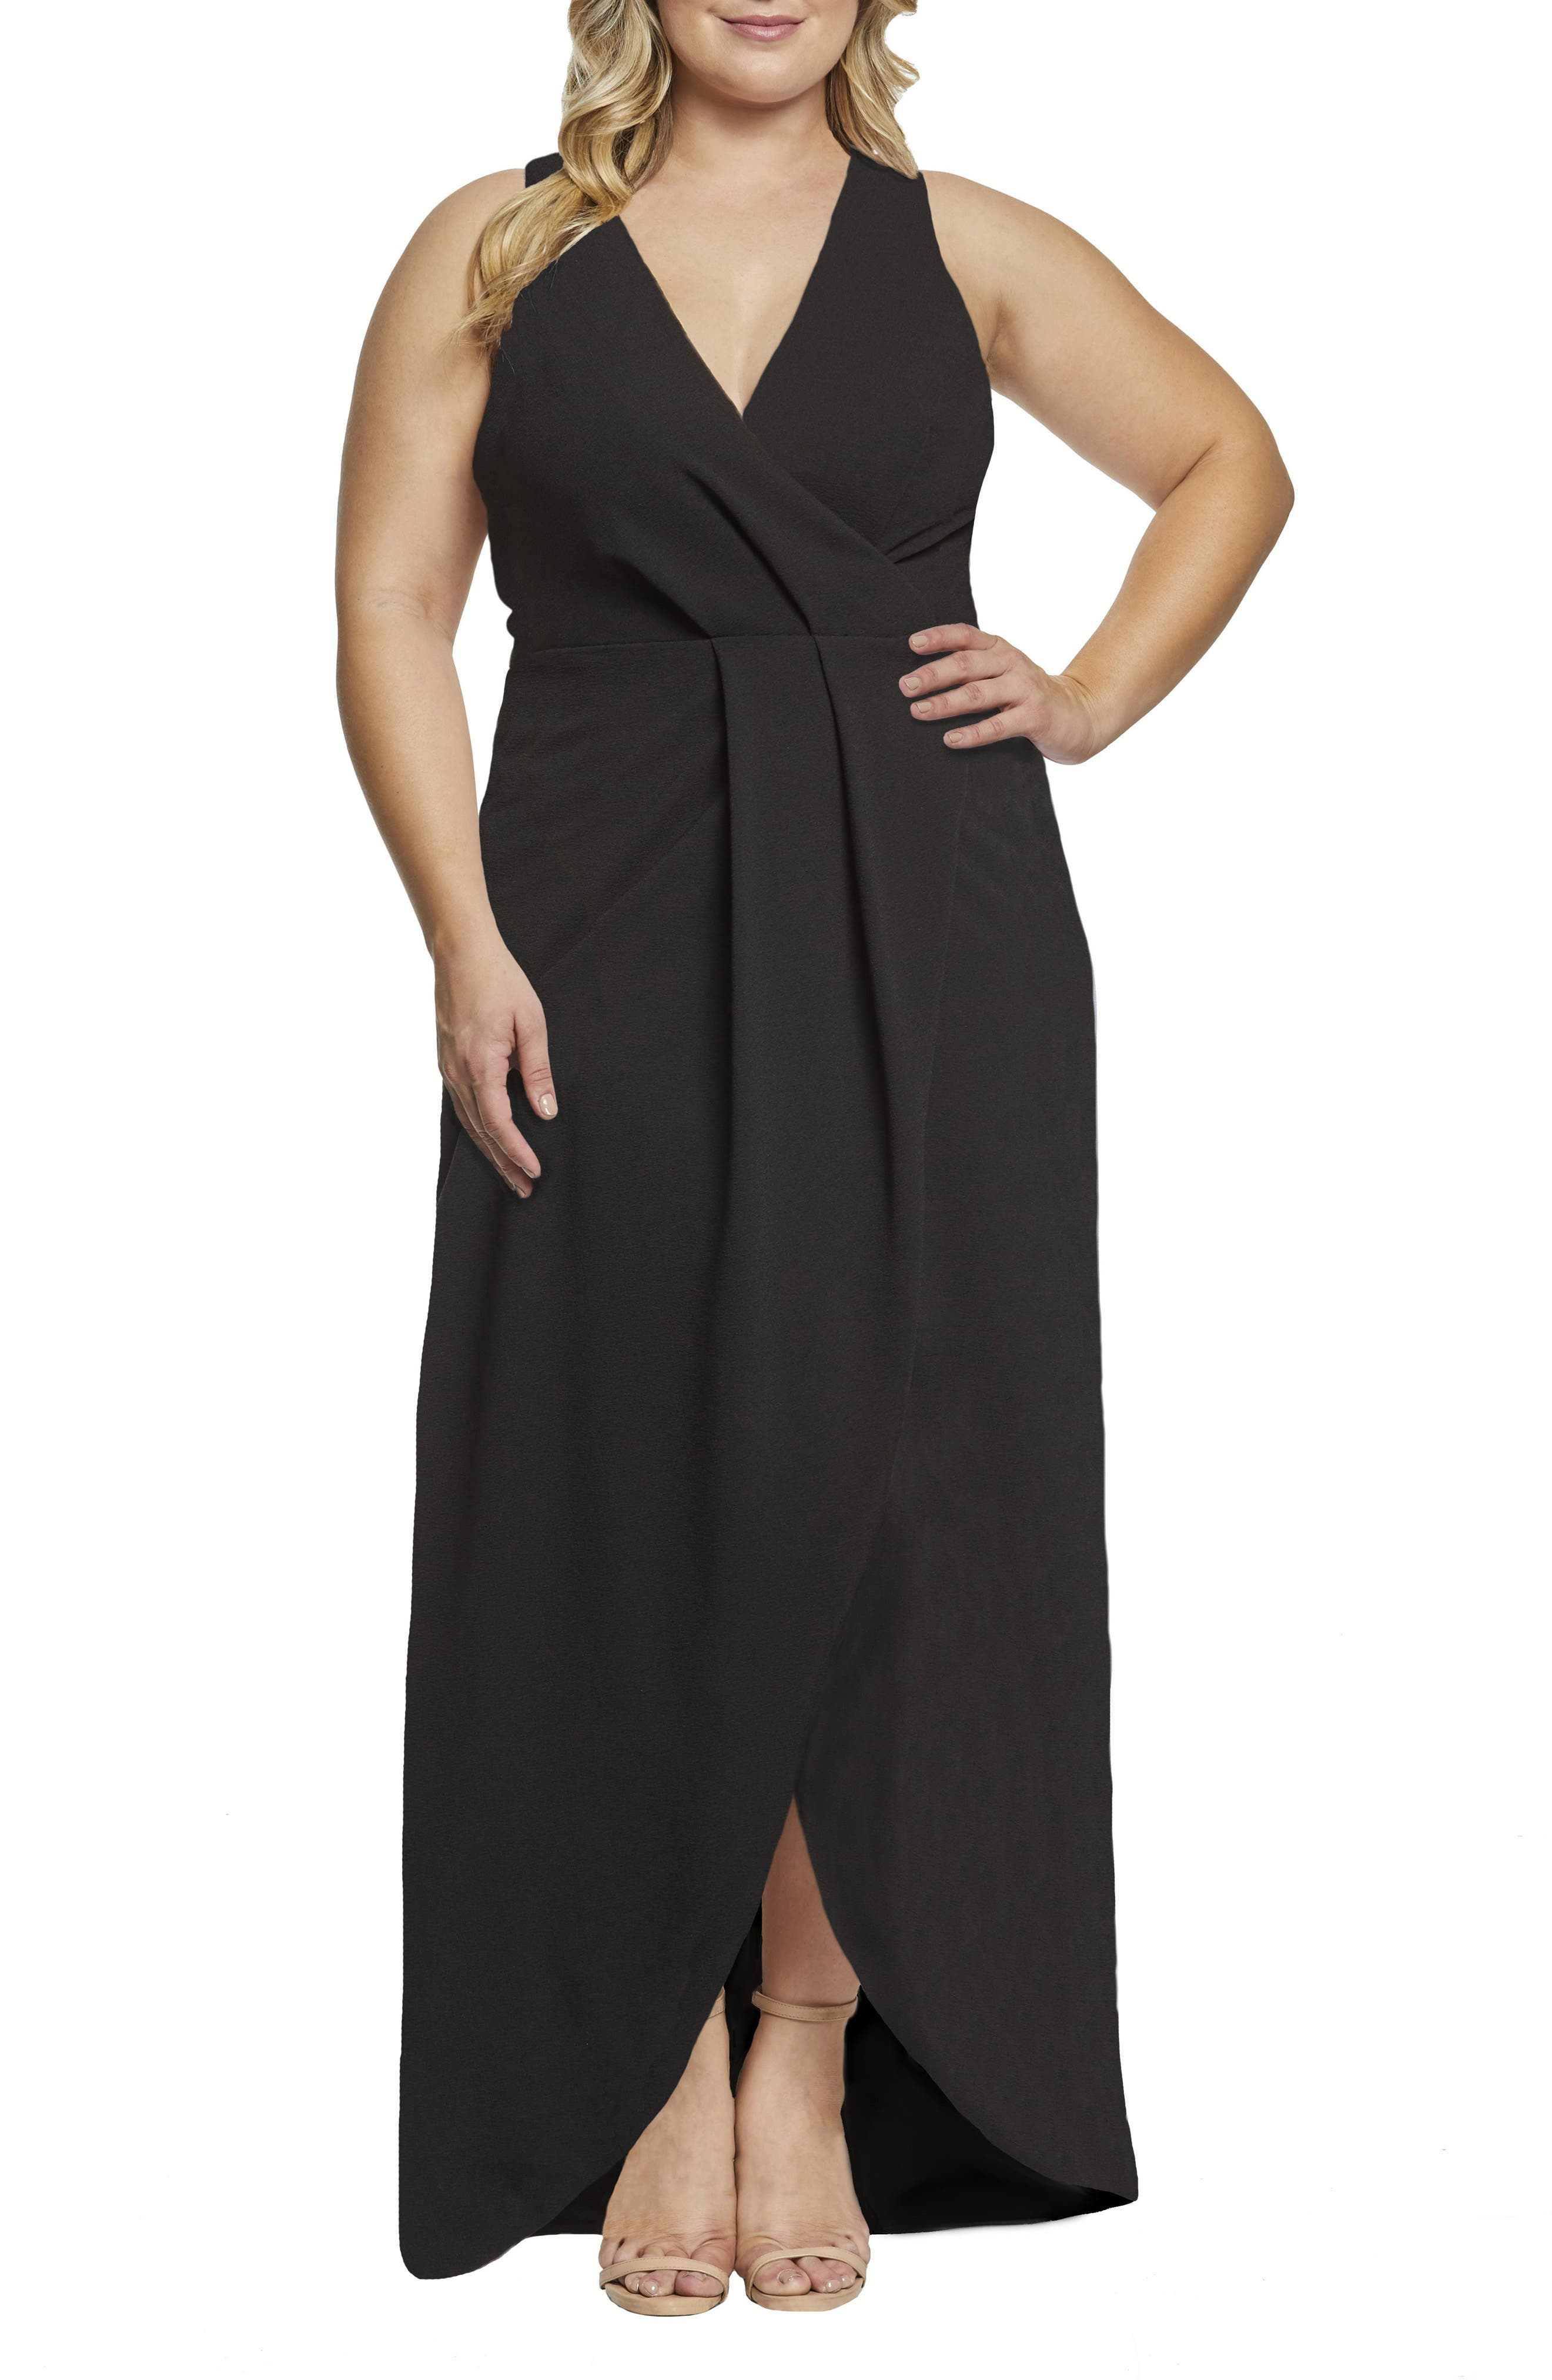 Plus Size Dress The Population Ariel Racerback Faux Wrap Evening Dress, Black